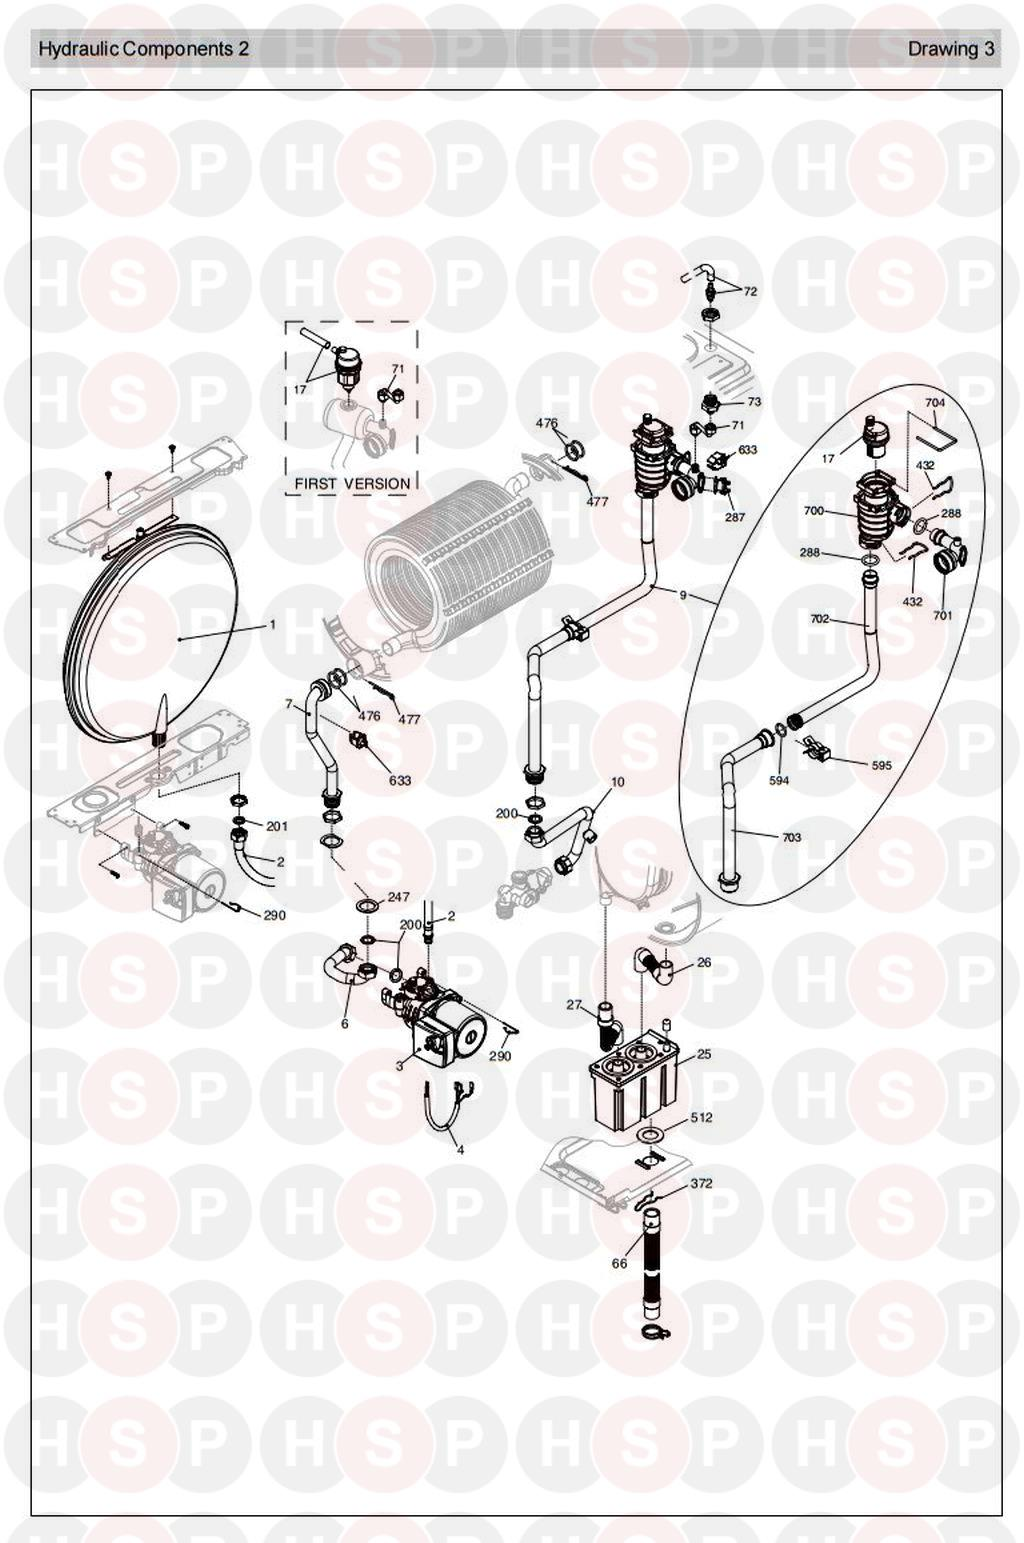 Vokera MYNUTE 30 HE SYSTEM (HYDRAULICS 2) Diagram